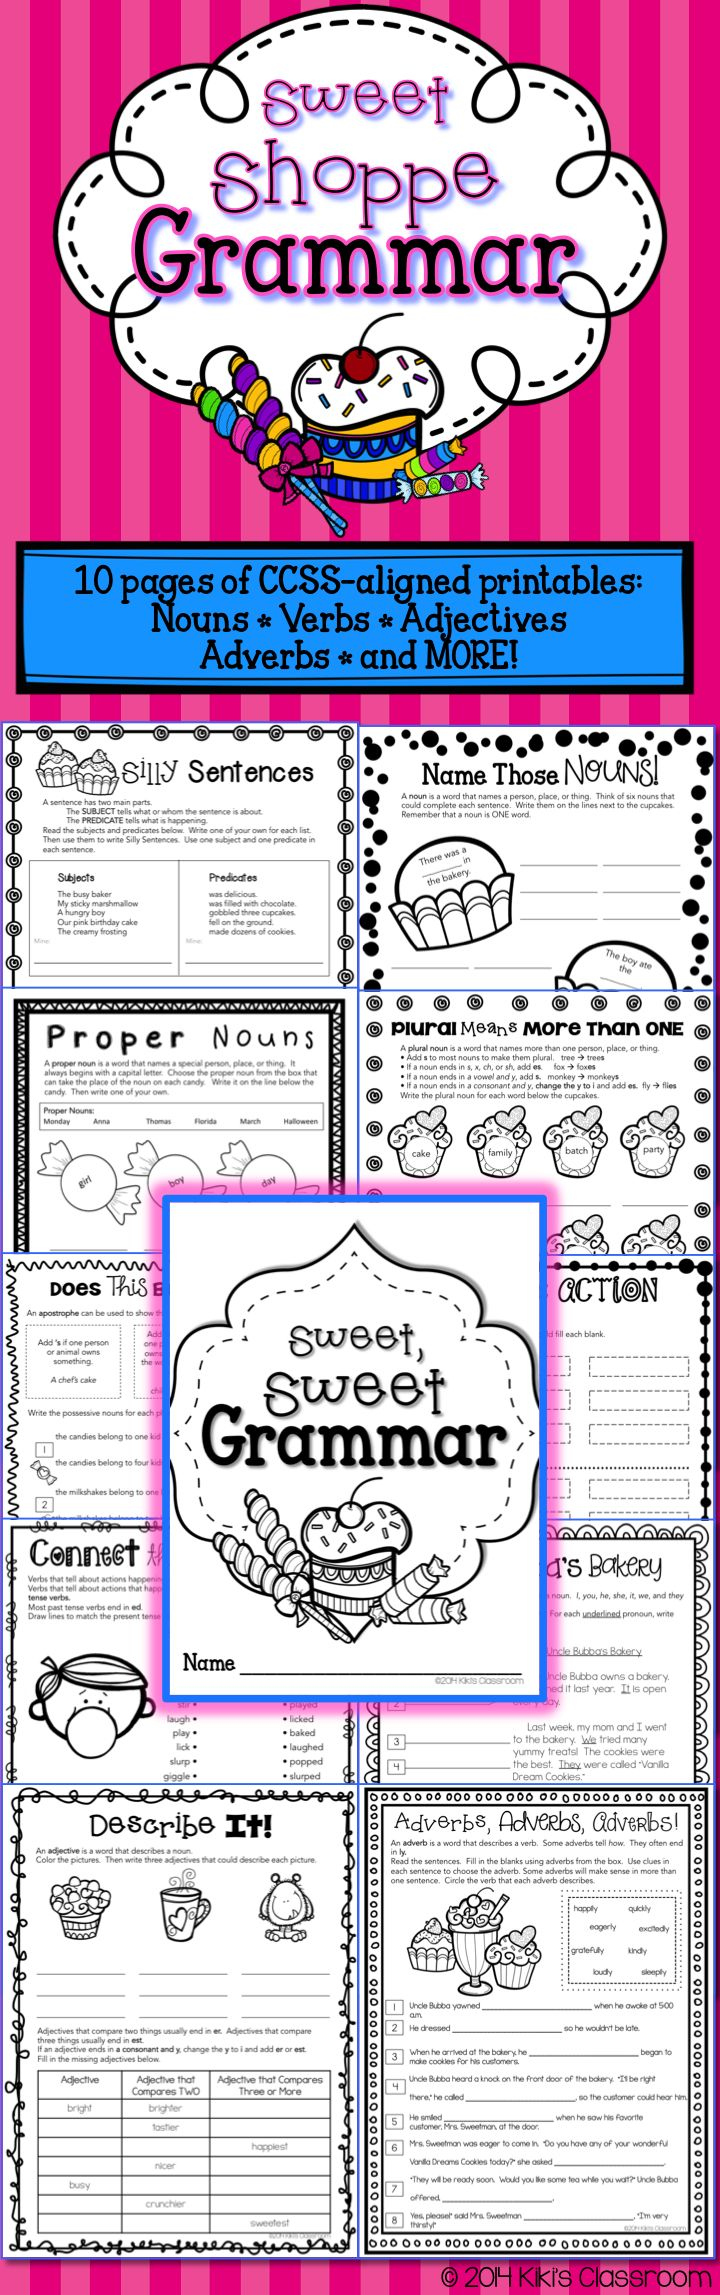 Organization Worksheets Classifying Worksheet Nouns Verbs Or Adjectives Math Number Patterns Worksheets Word with Pronouns And Antecedents Worksheets Excel Classifying Worksheet Nouns Verbs Or Adjectives  Classifying Worksheet  Nouns Verbs Or Adjectives Classifying Worksheet Nouns Multiplications Worksheets Pdf